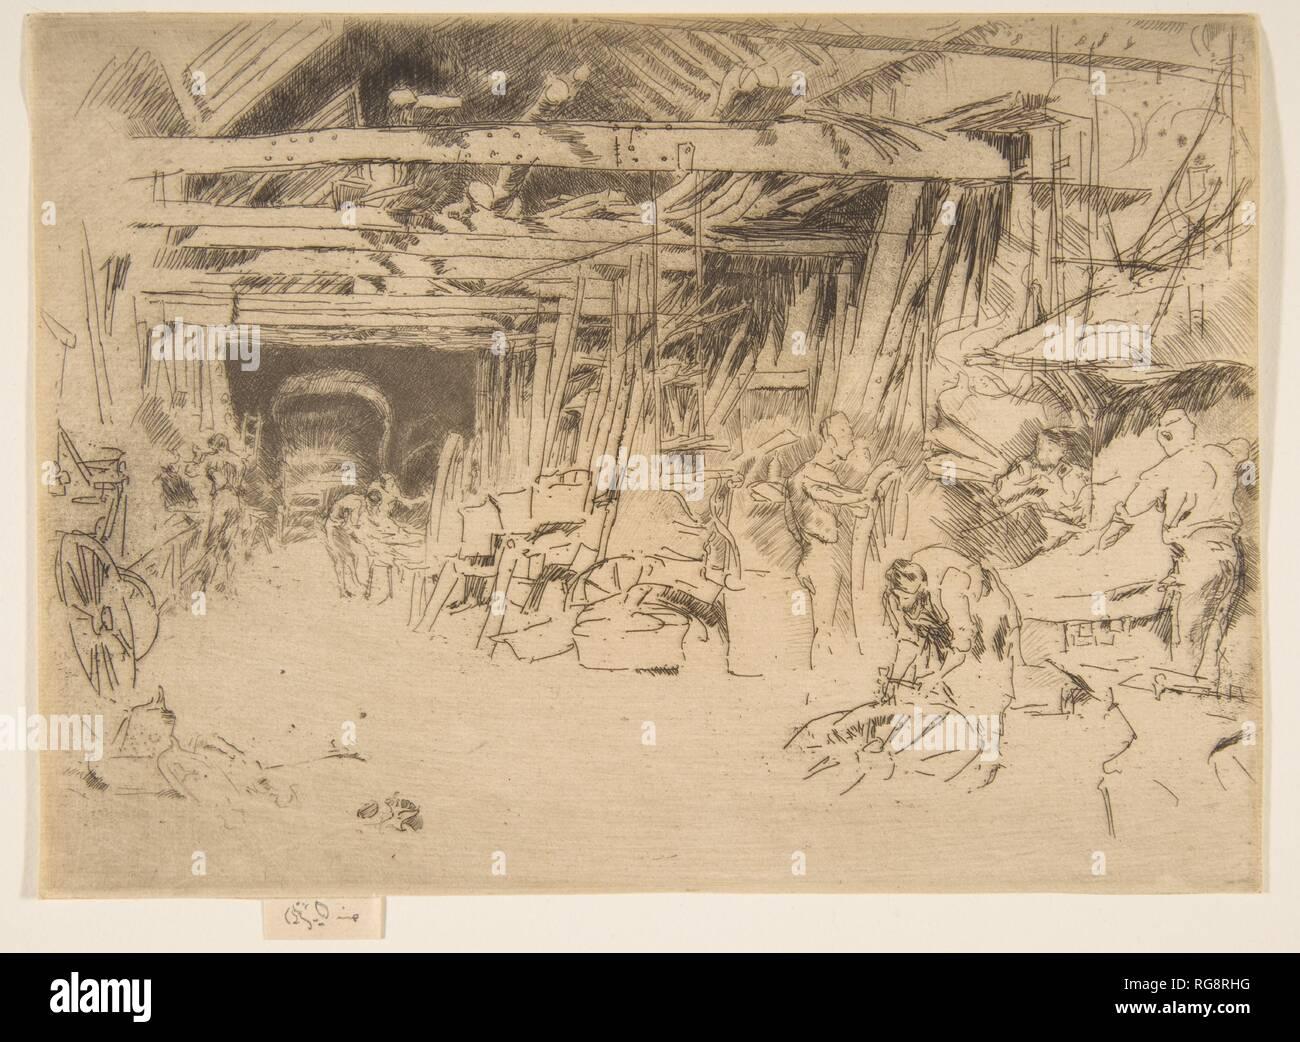 Wheelwright. Artist: James McNeill Whistler (American, Lowell, Massachusetts 1834-1903 London). Dimensions: Plate: 4 15/16 × 6 15/16 in. (12.6 × 17.6 cm)  Sheet: 4 15/16 × 6 15/16 in. (12.6 × 17.6 cm). Series/Portfolio: Second Venice Set ('A Set of Twenty-Six Etchings by James A. McN. Whistler,' 1886). Date: 1879-80. Museum: Metropolitan Museum of Art, New York, USA. - Stock Image